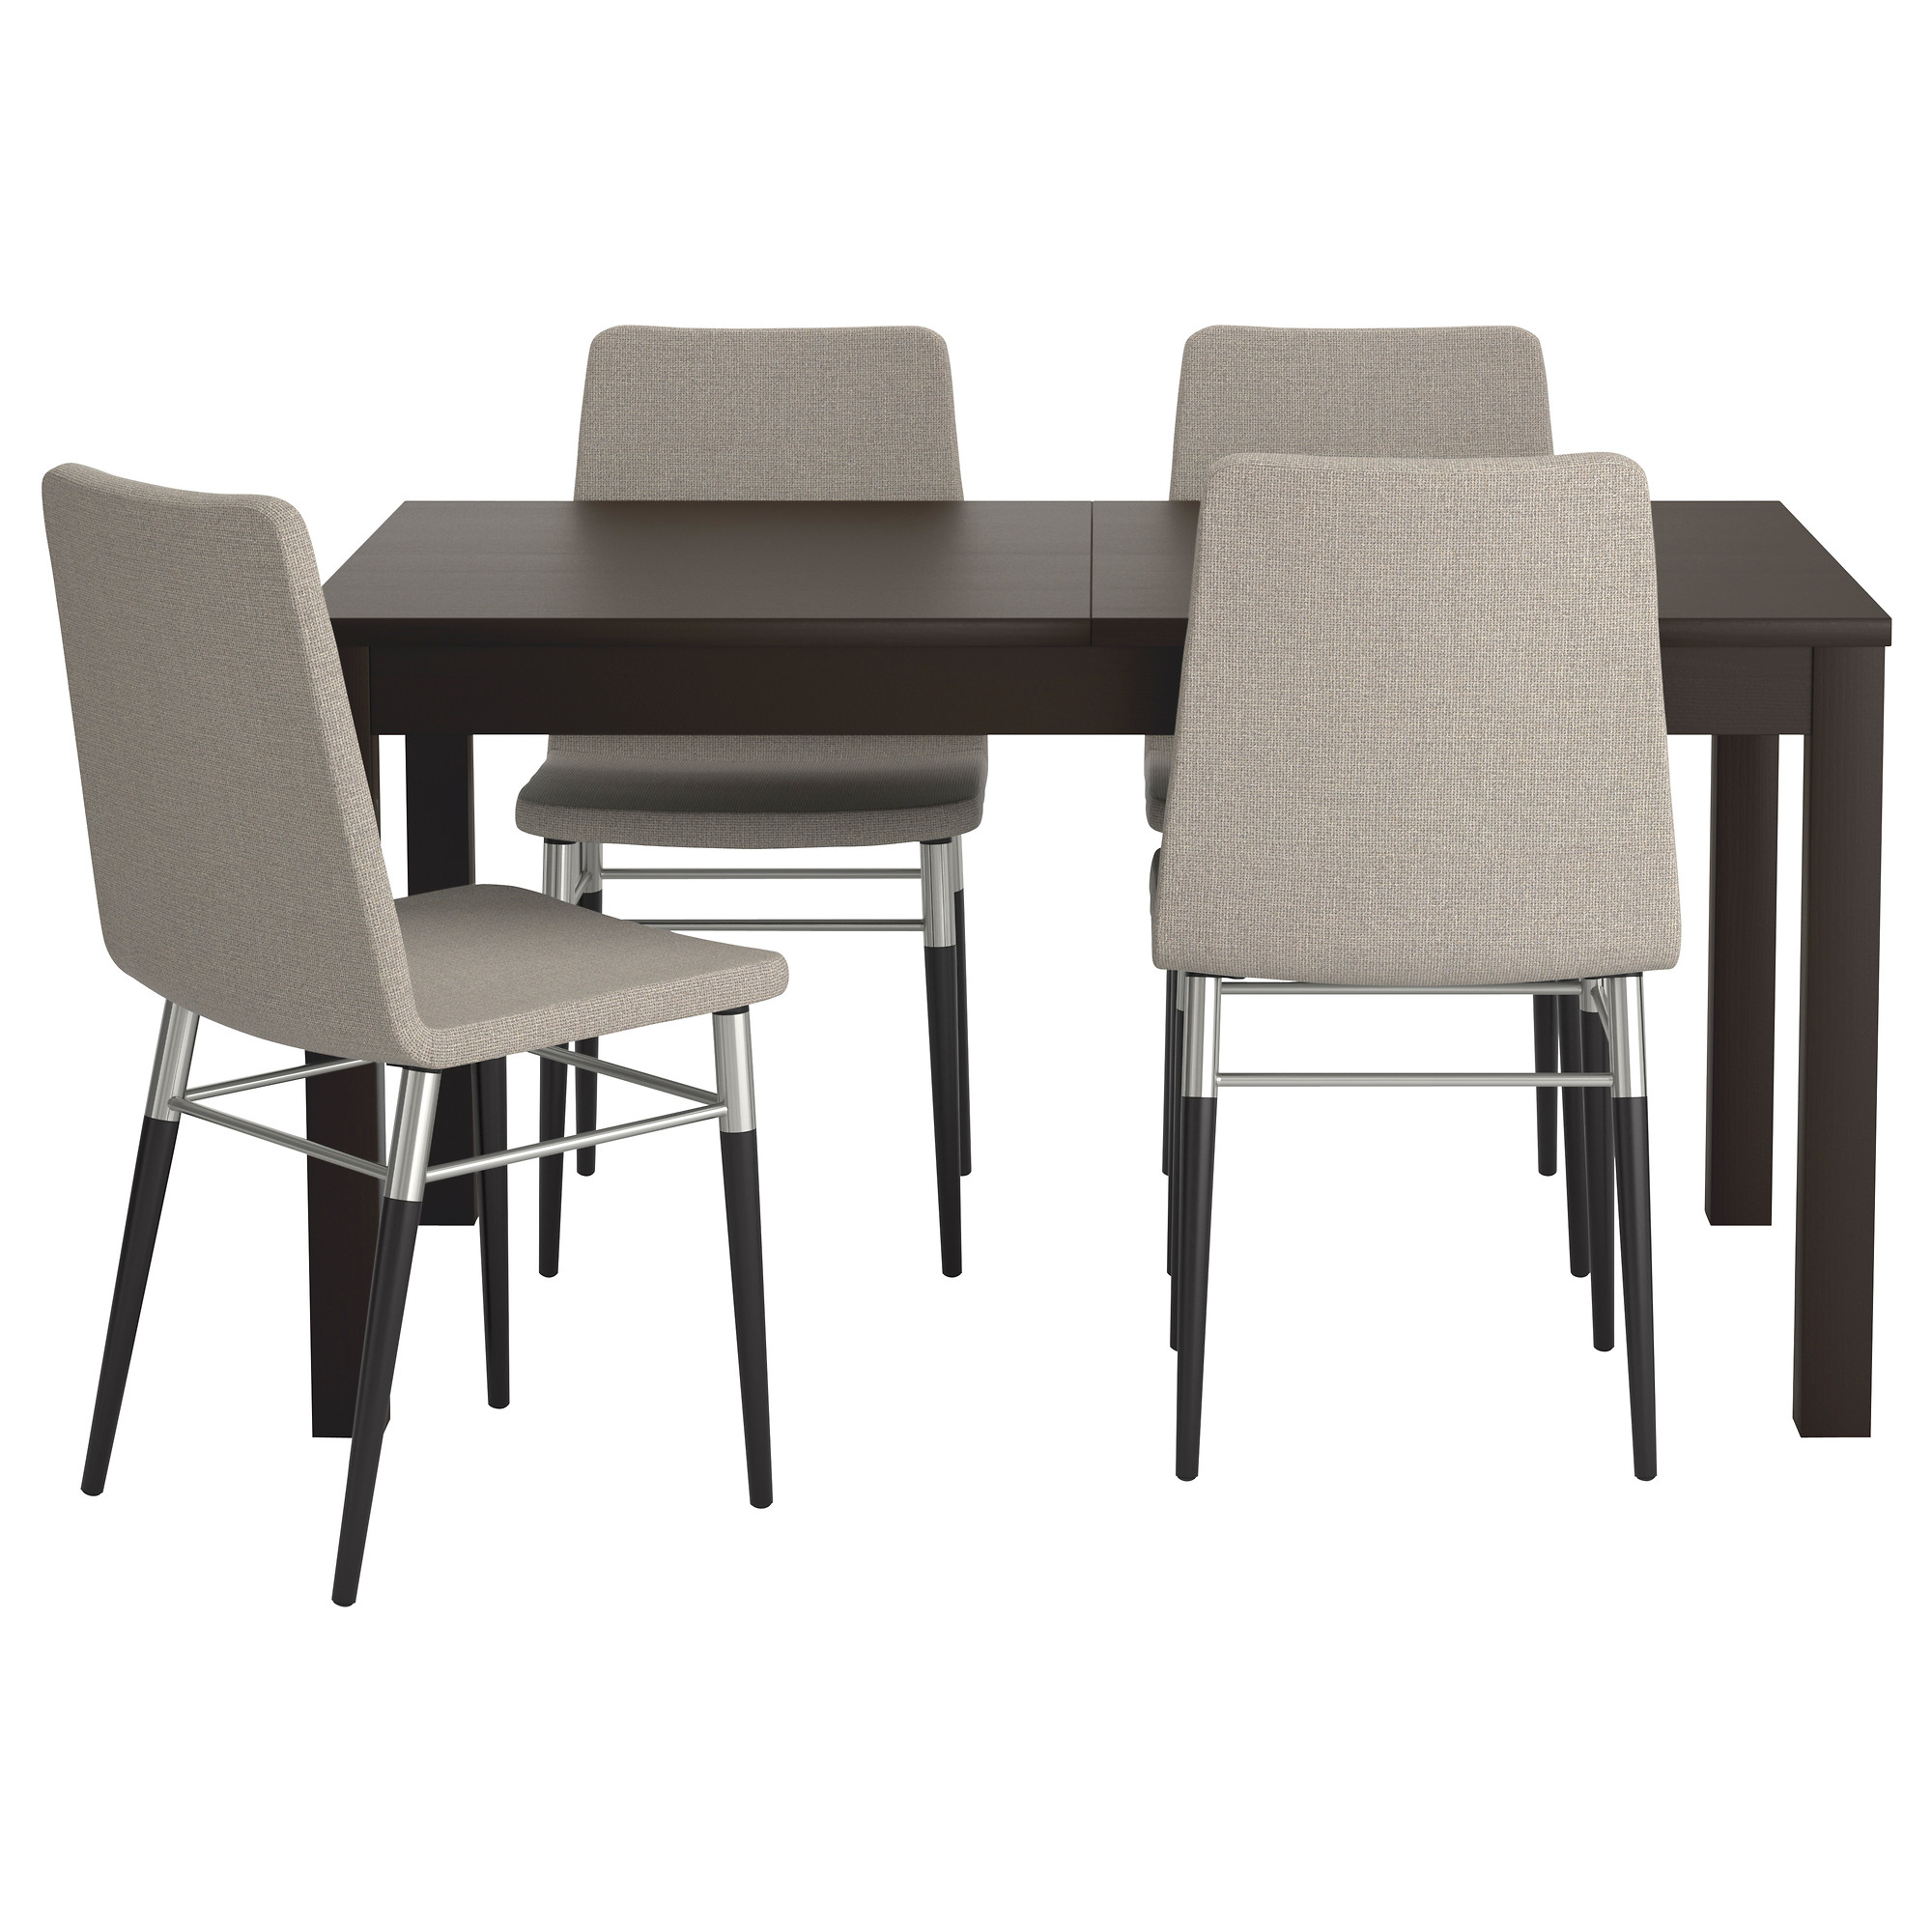 bjursta preben table and 4 chairs brown black ten light gray length - Dining Chairs Set Of 4